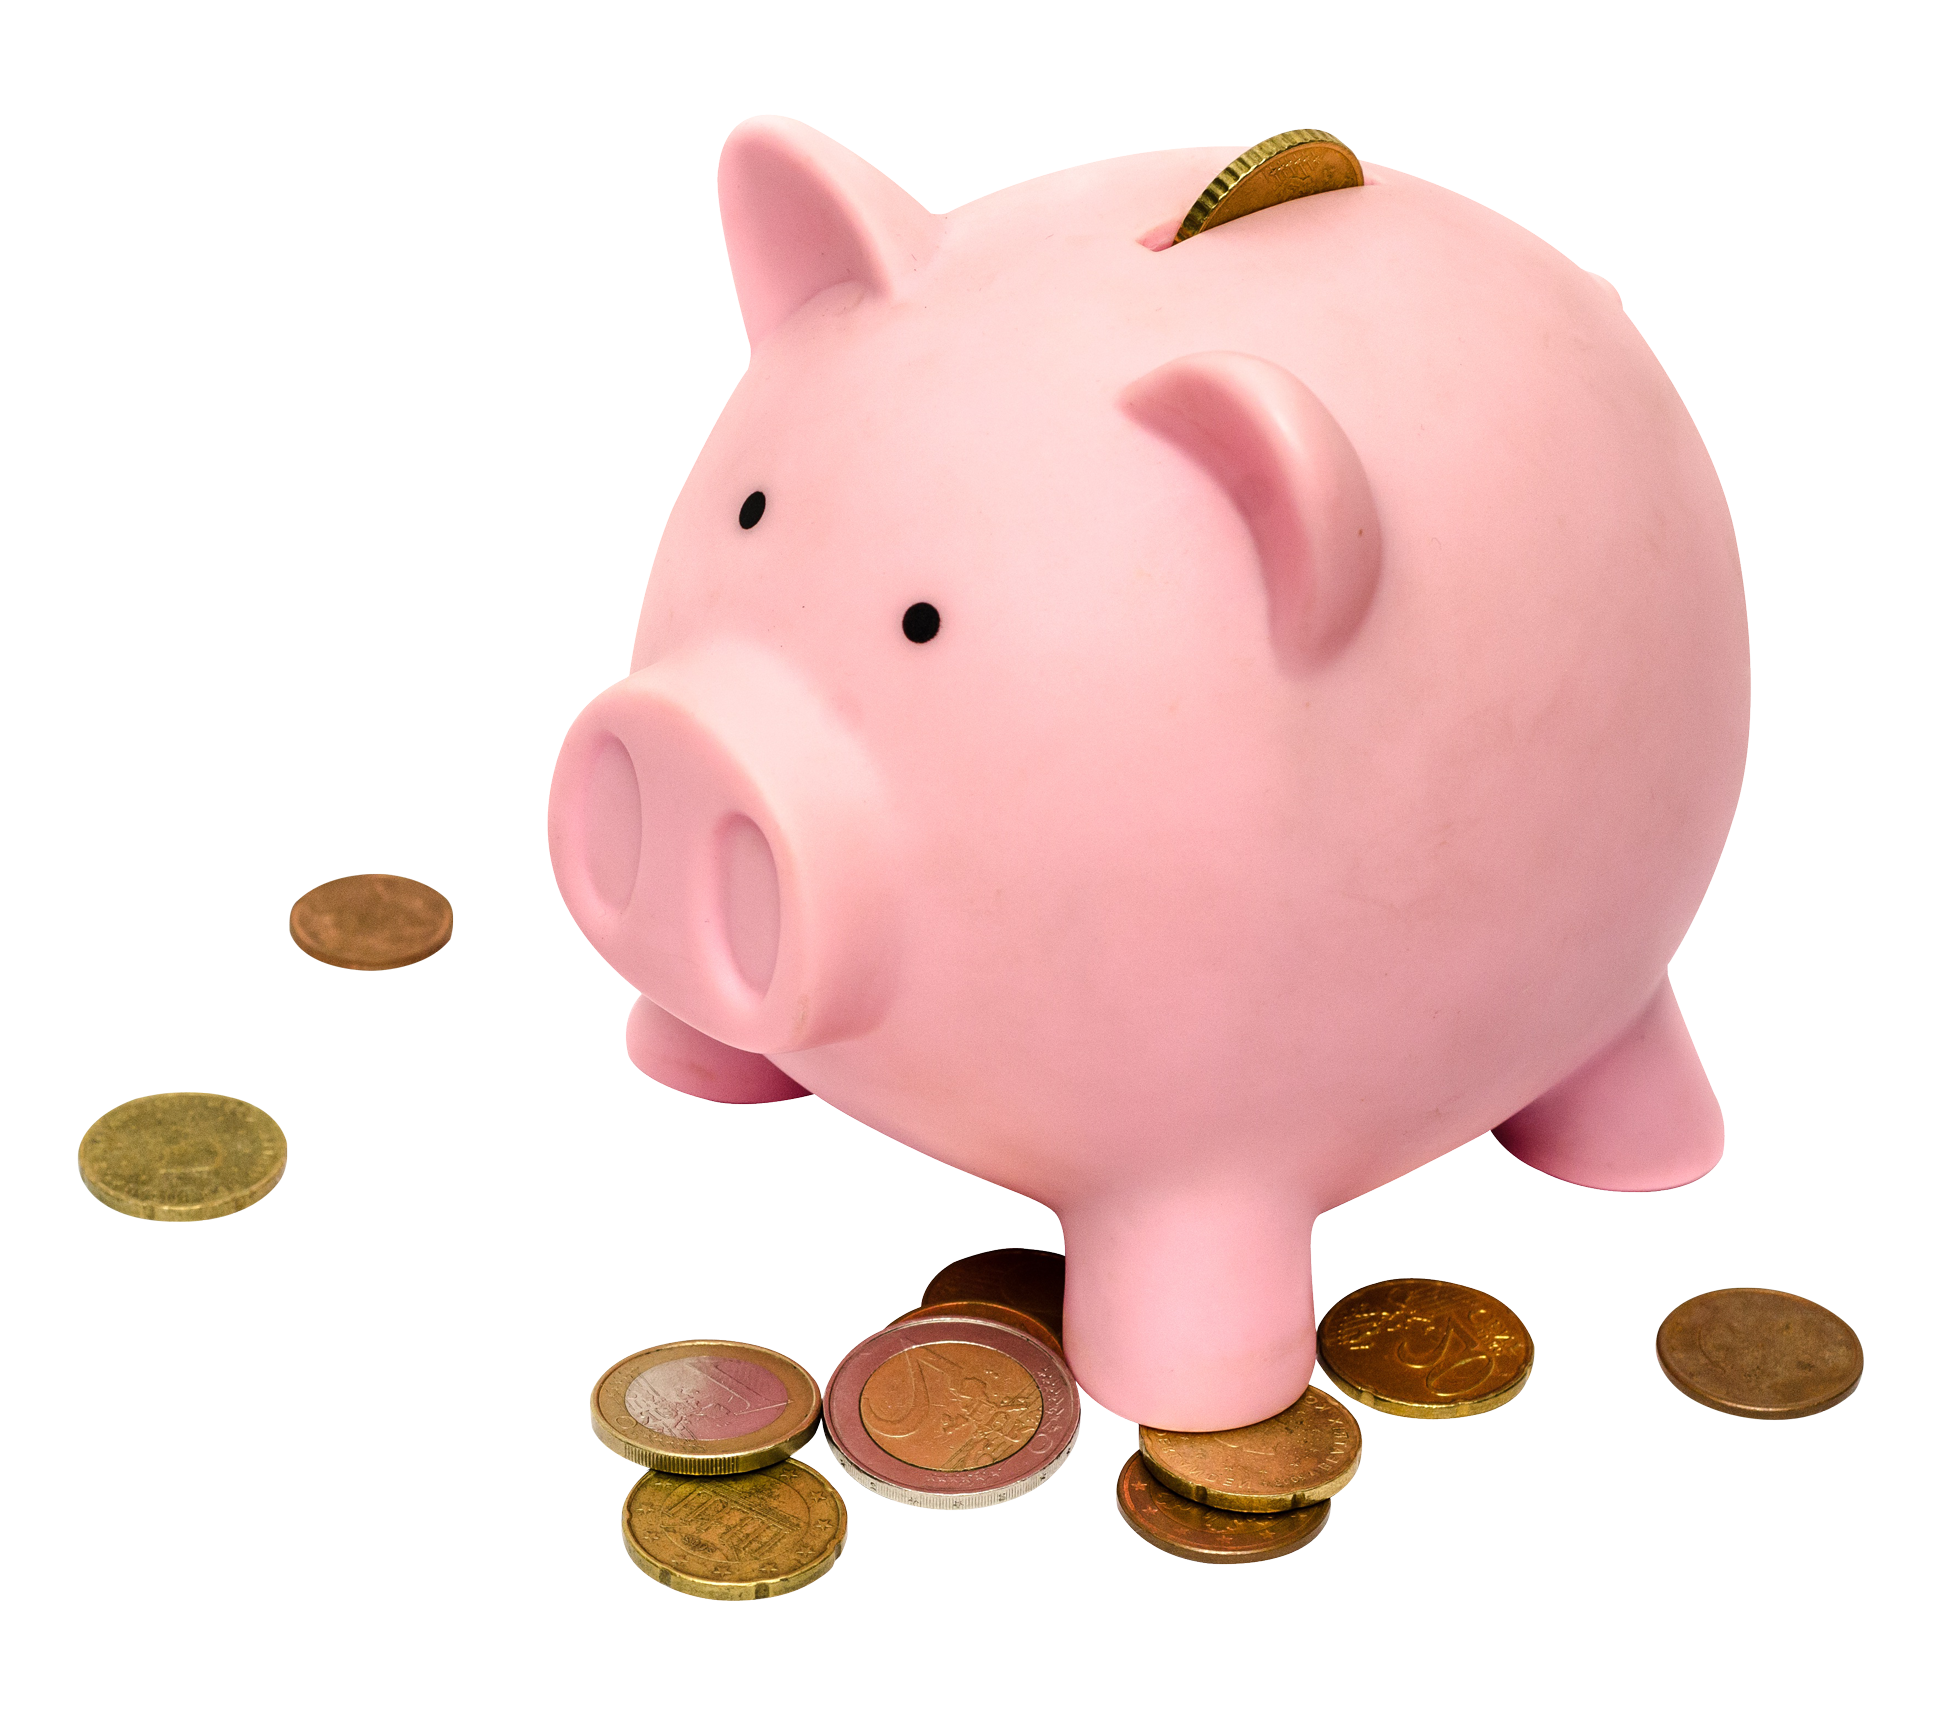 Piggy bank saving money clipart clipart black and white library Piggy Bank PNG Image - PurePNG | Free transparent CC0 PNG Image Library clipart black and white library